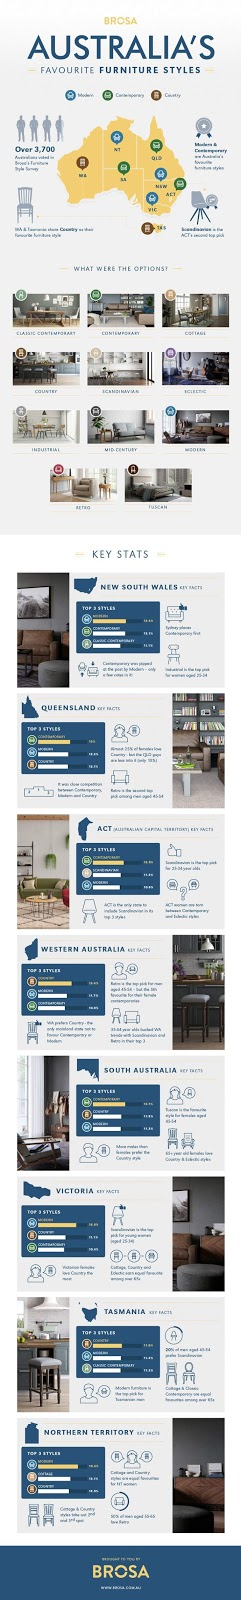 popular furniture styles. Infographic Source Httpswwwbrosacomaupagesaustraliasfavourite Furniturestyles Popular Furniture Styles